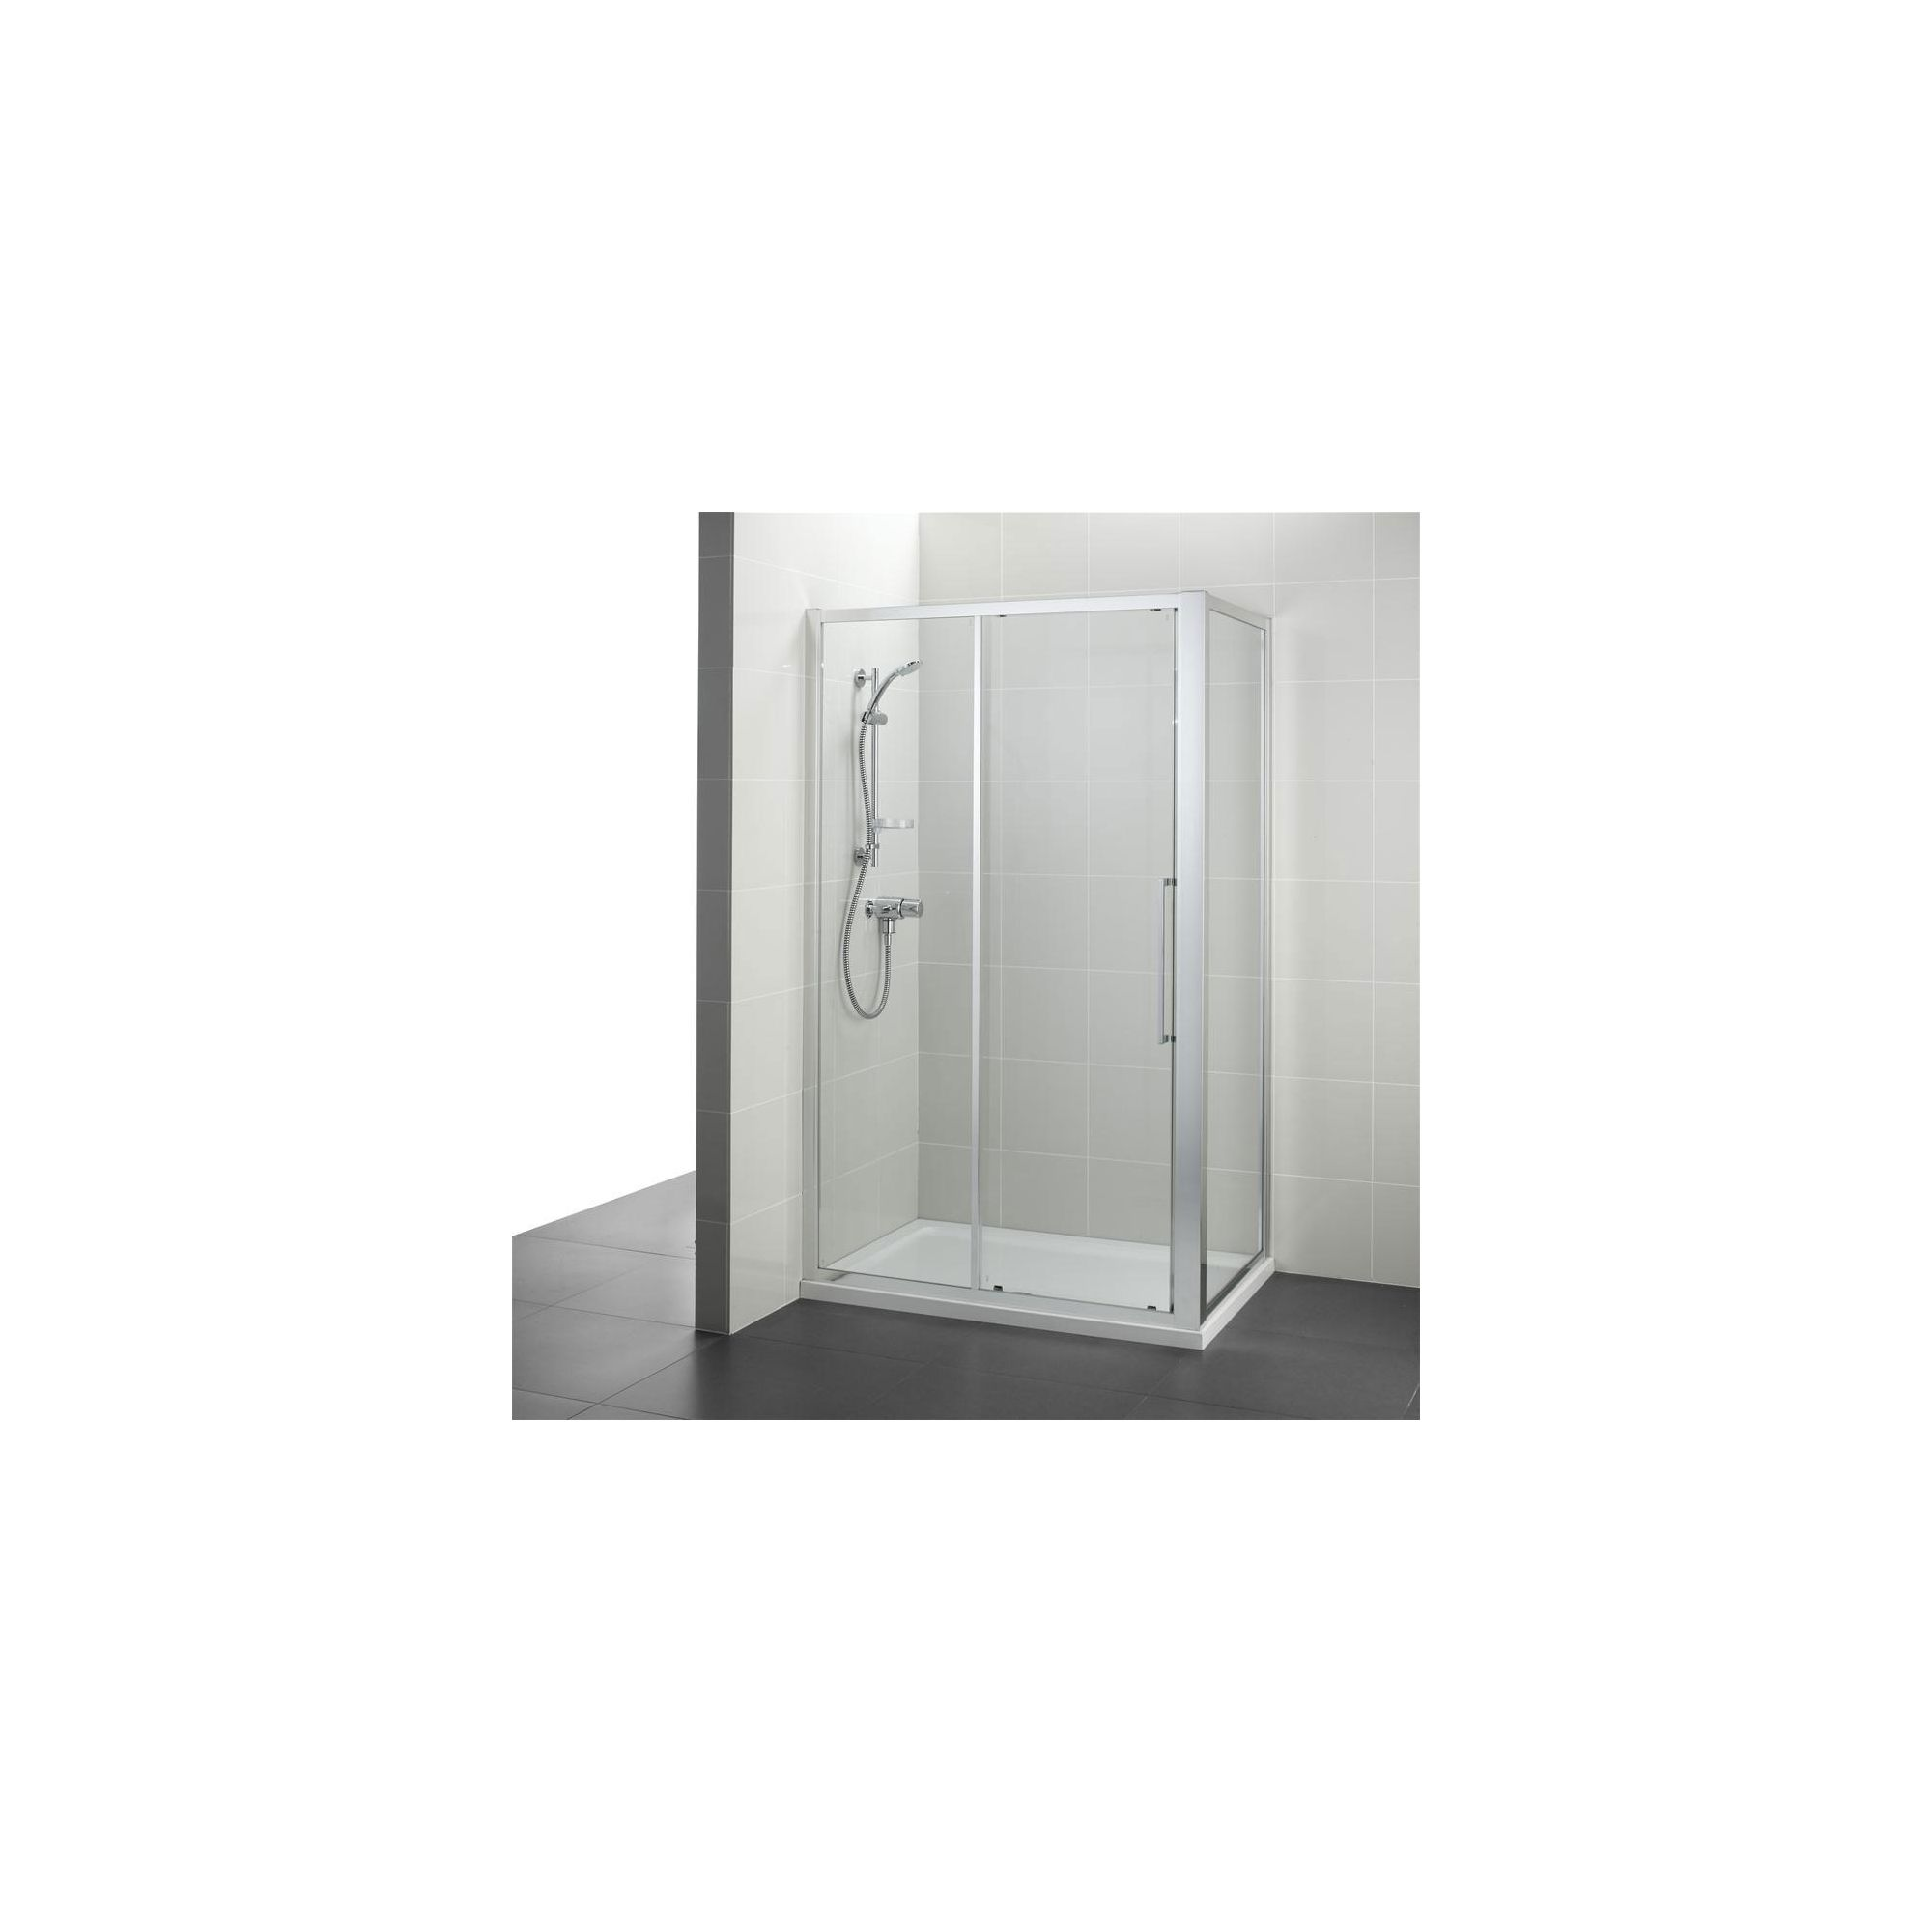 Ideal Standard Kubo Bi-Fold Door Shower Enclosure, 900mm x 800mm, Bright Silver Frame, Low Profile Tray at Tesco Direct